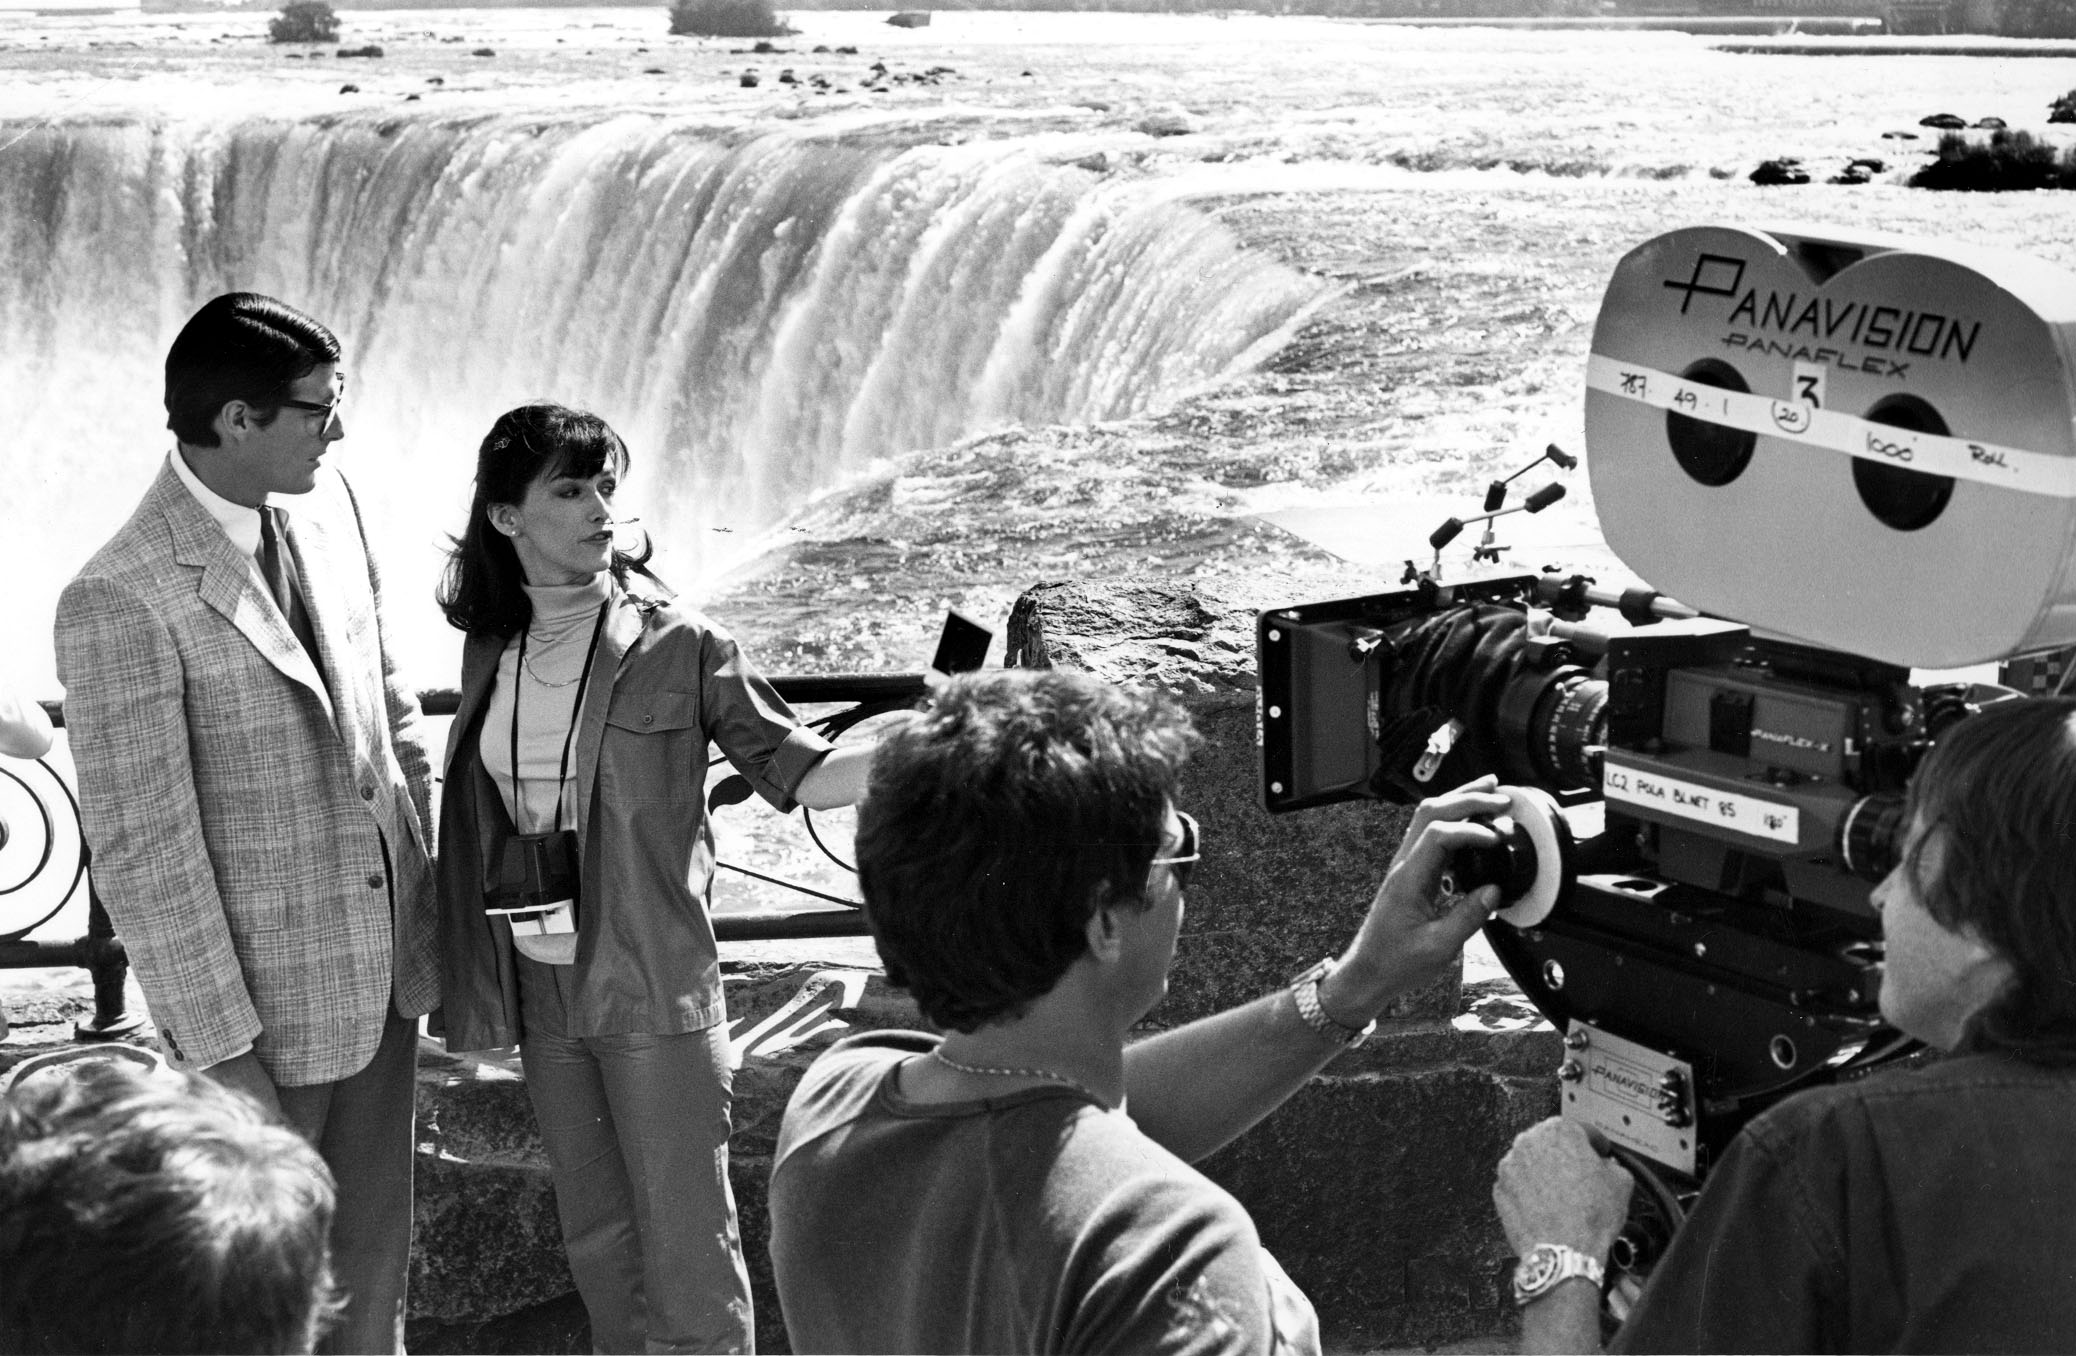 Filming of movie Superman II at Horseshoe Falls - Christopher Reeve and Margot Kidder (image/jpeg)